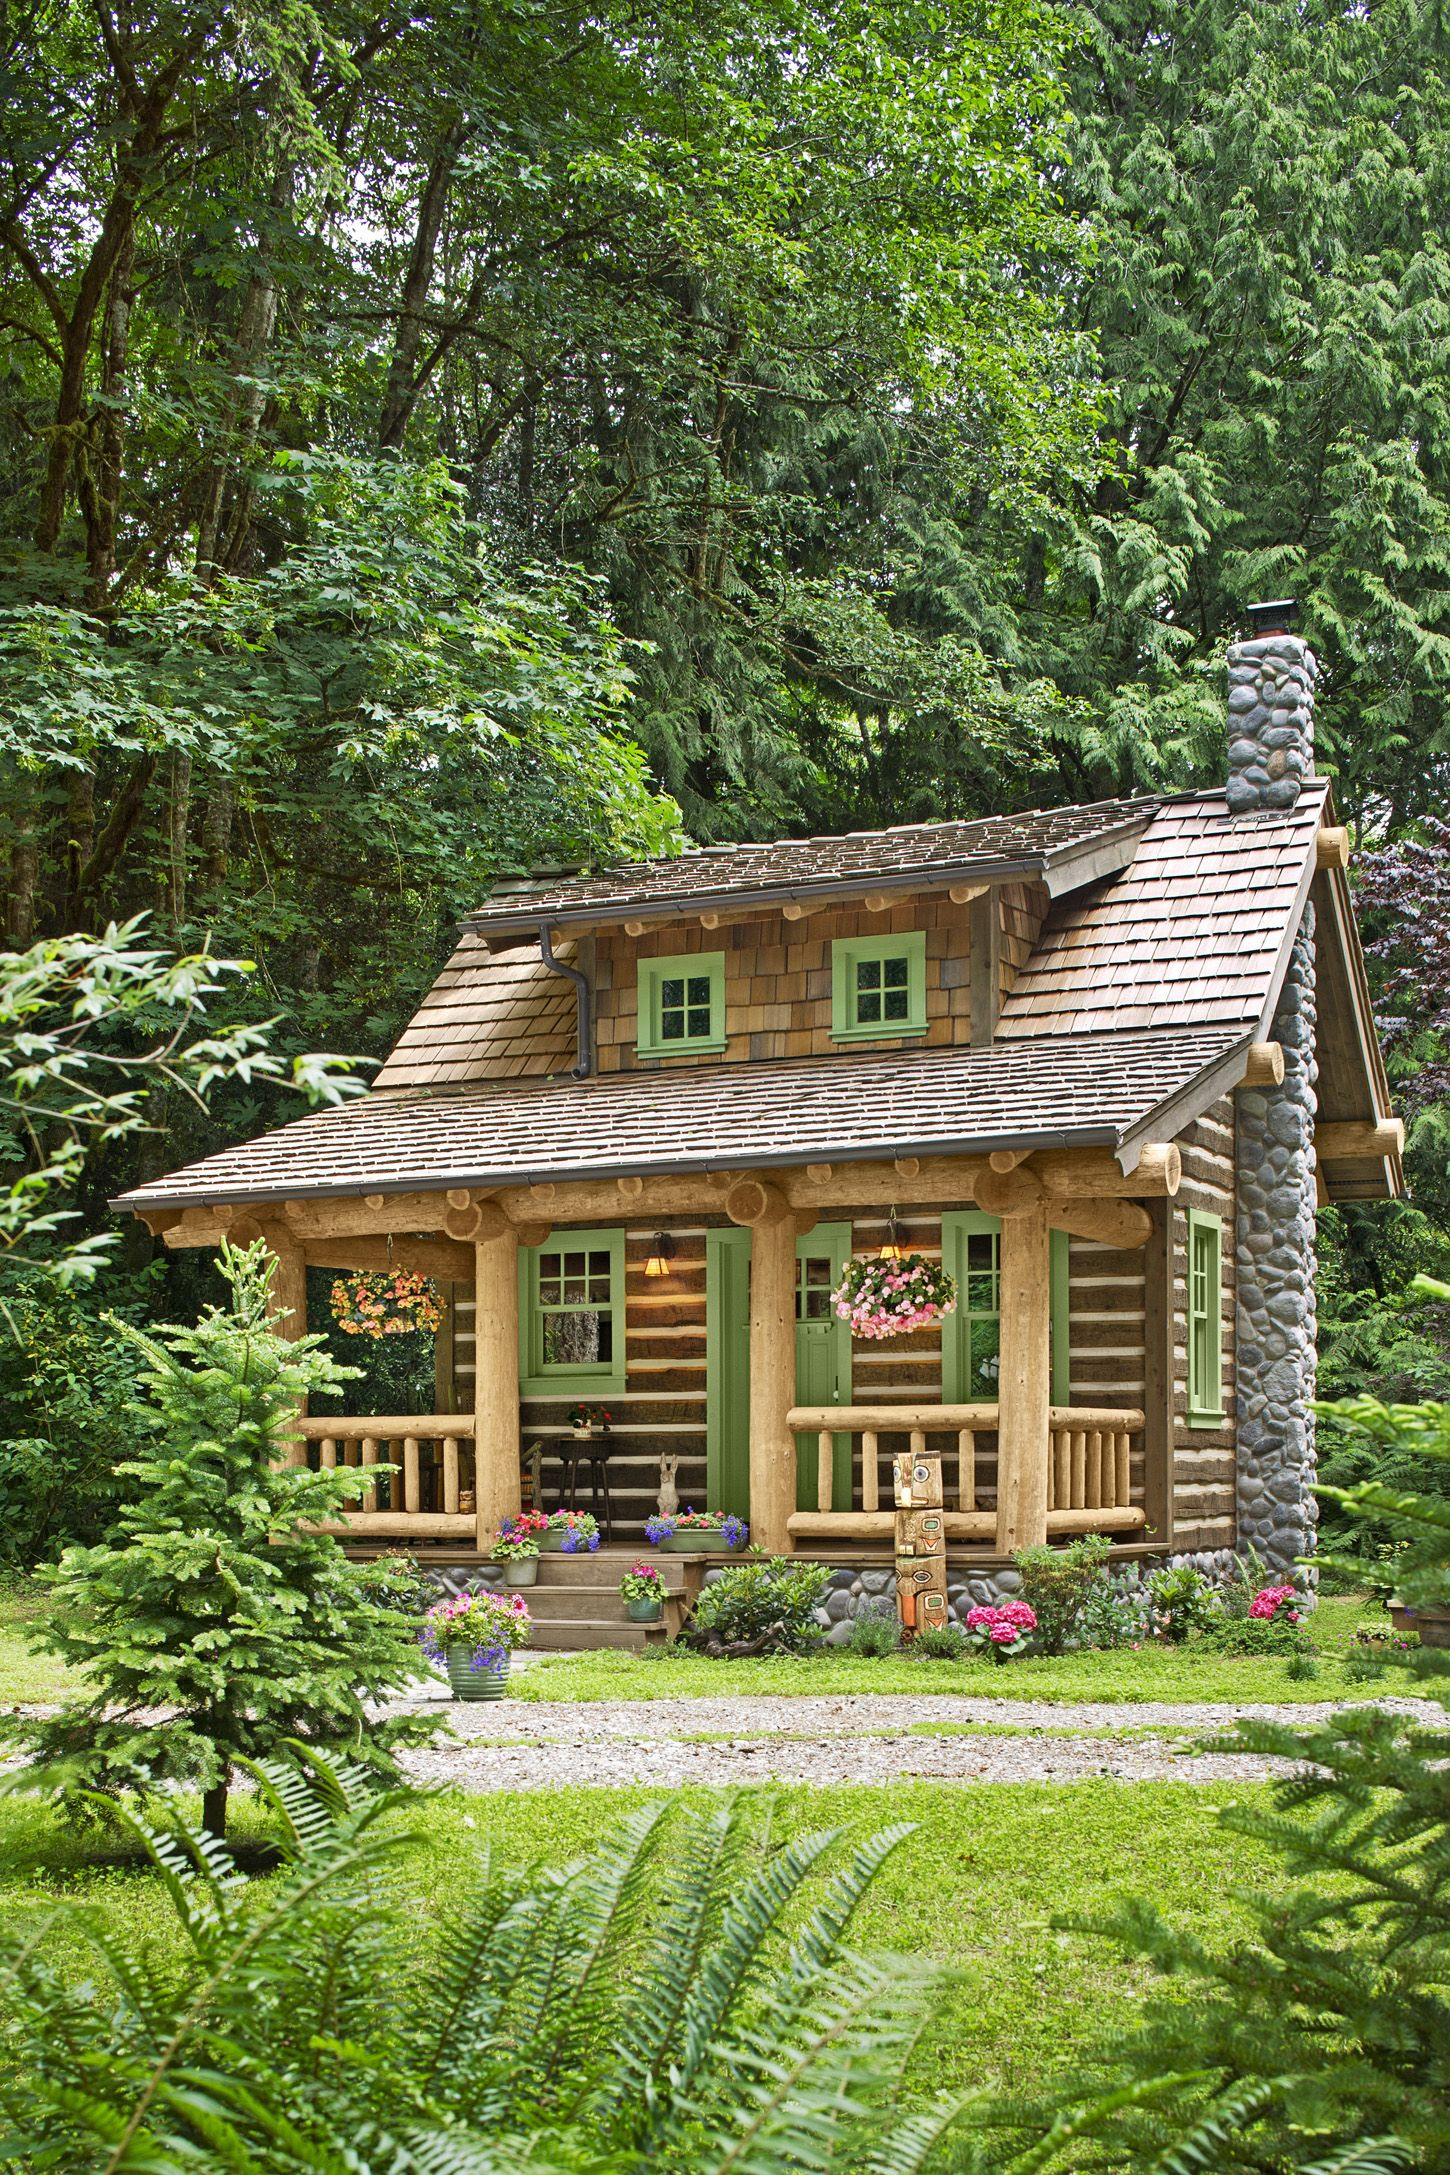 Small Cabin Style House Plans Awesome 86 Best Tiny Houses 2020 Small House & Plans